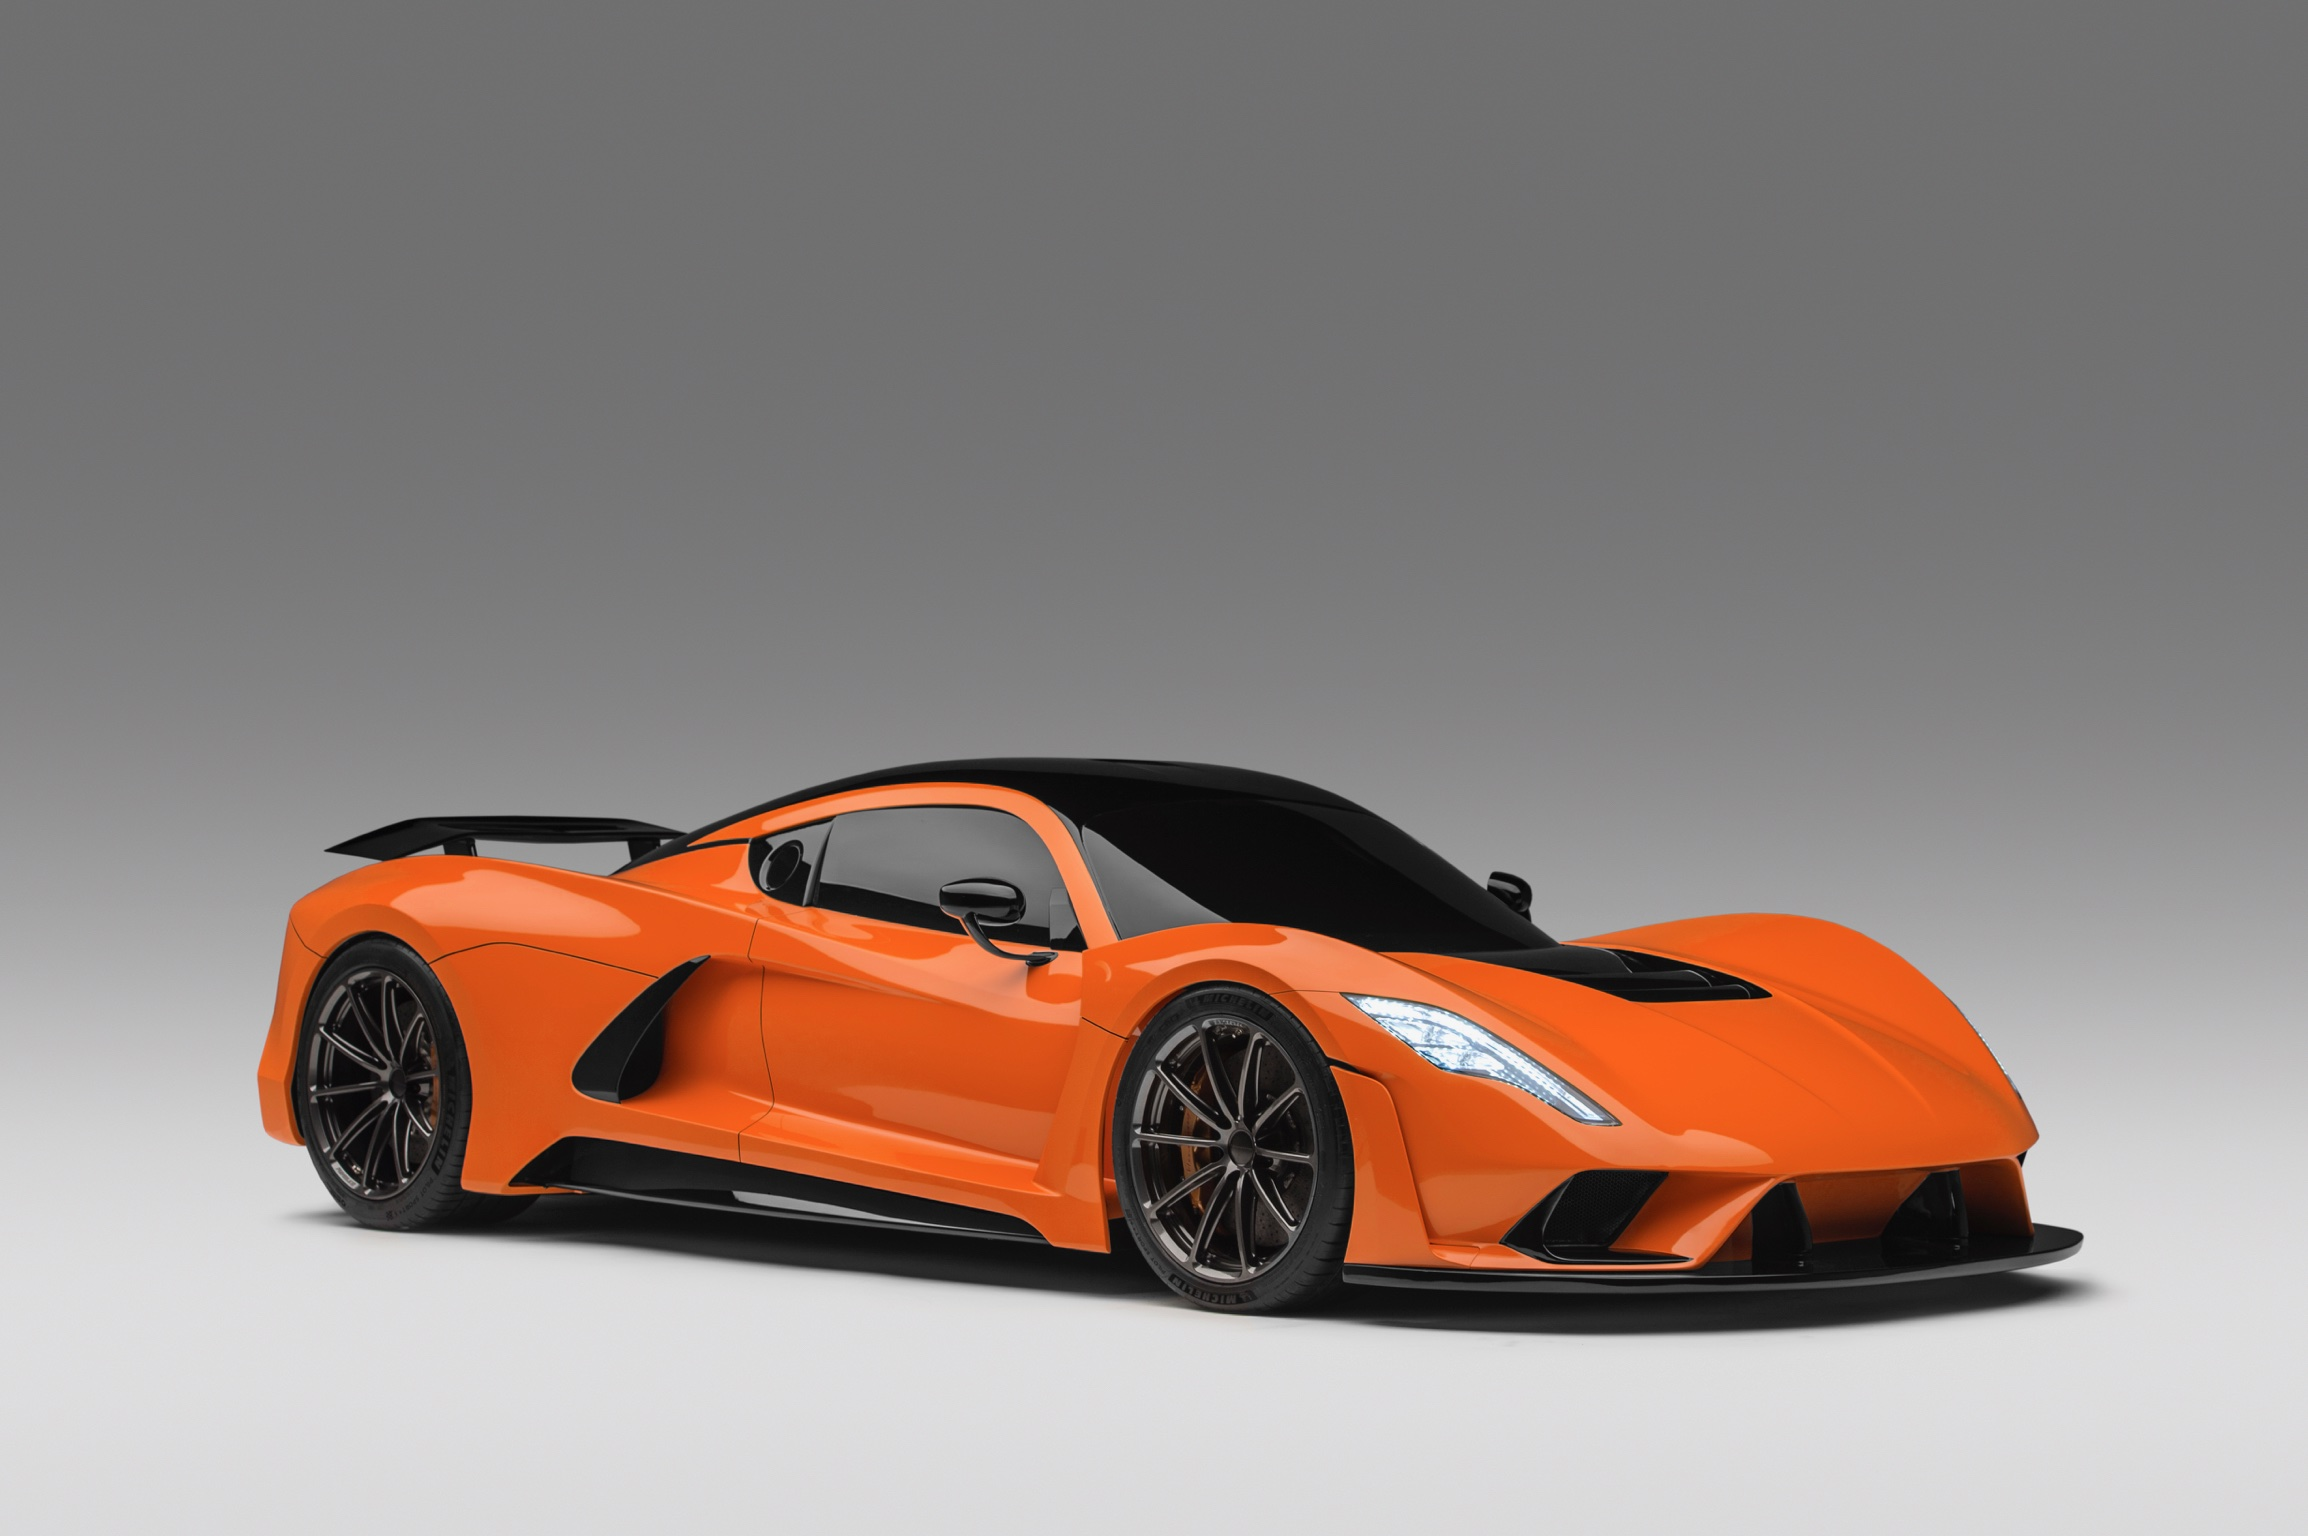 Hennessey Venom F5 in Deep Orange Metallic